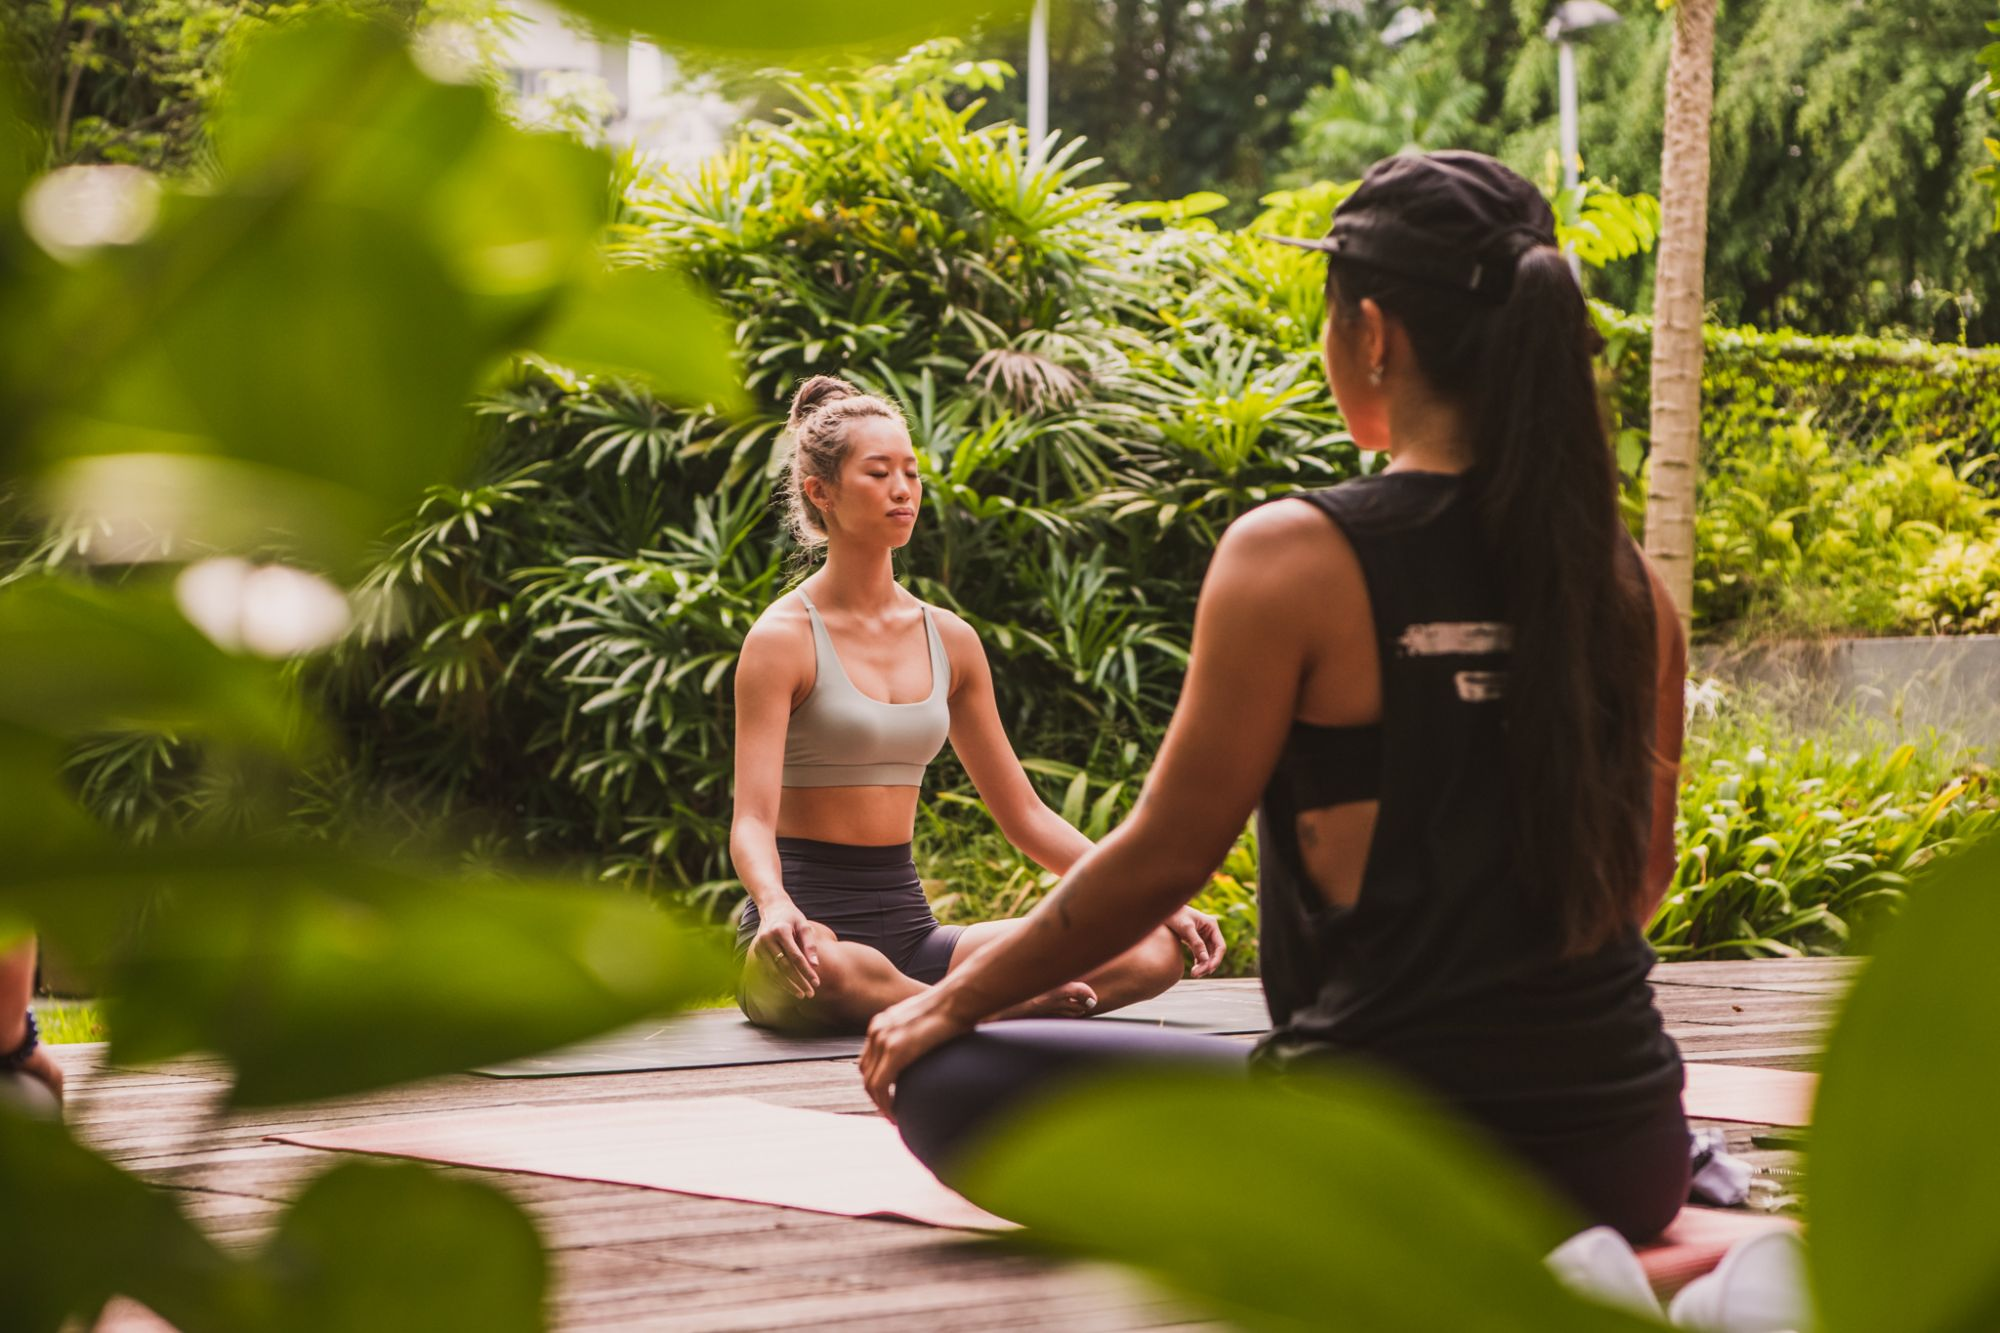 6 Wellness Retreats and Self-Care Staycations in Singapore to Boost Your Mental Health